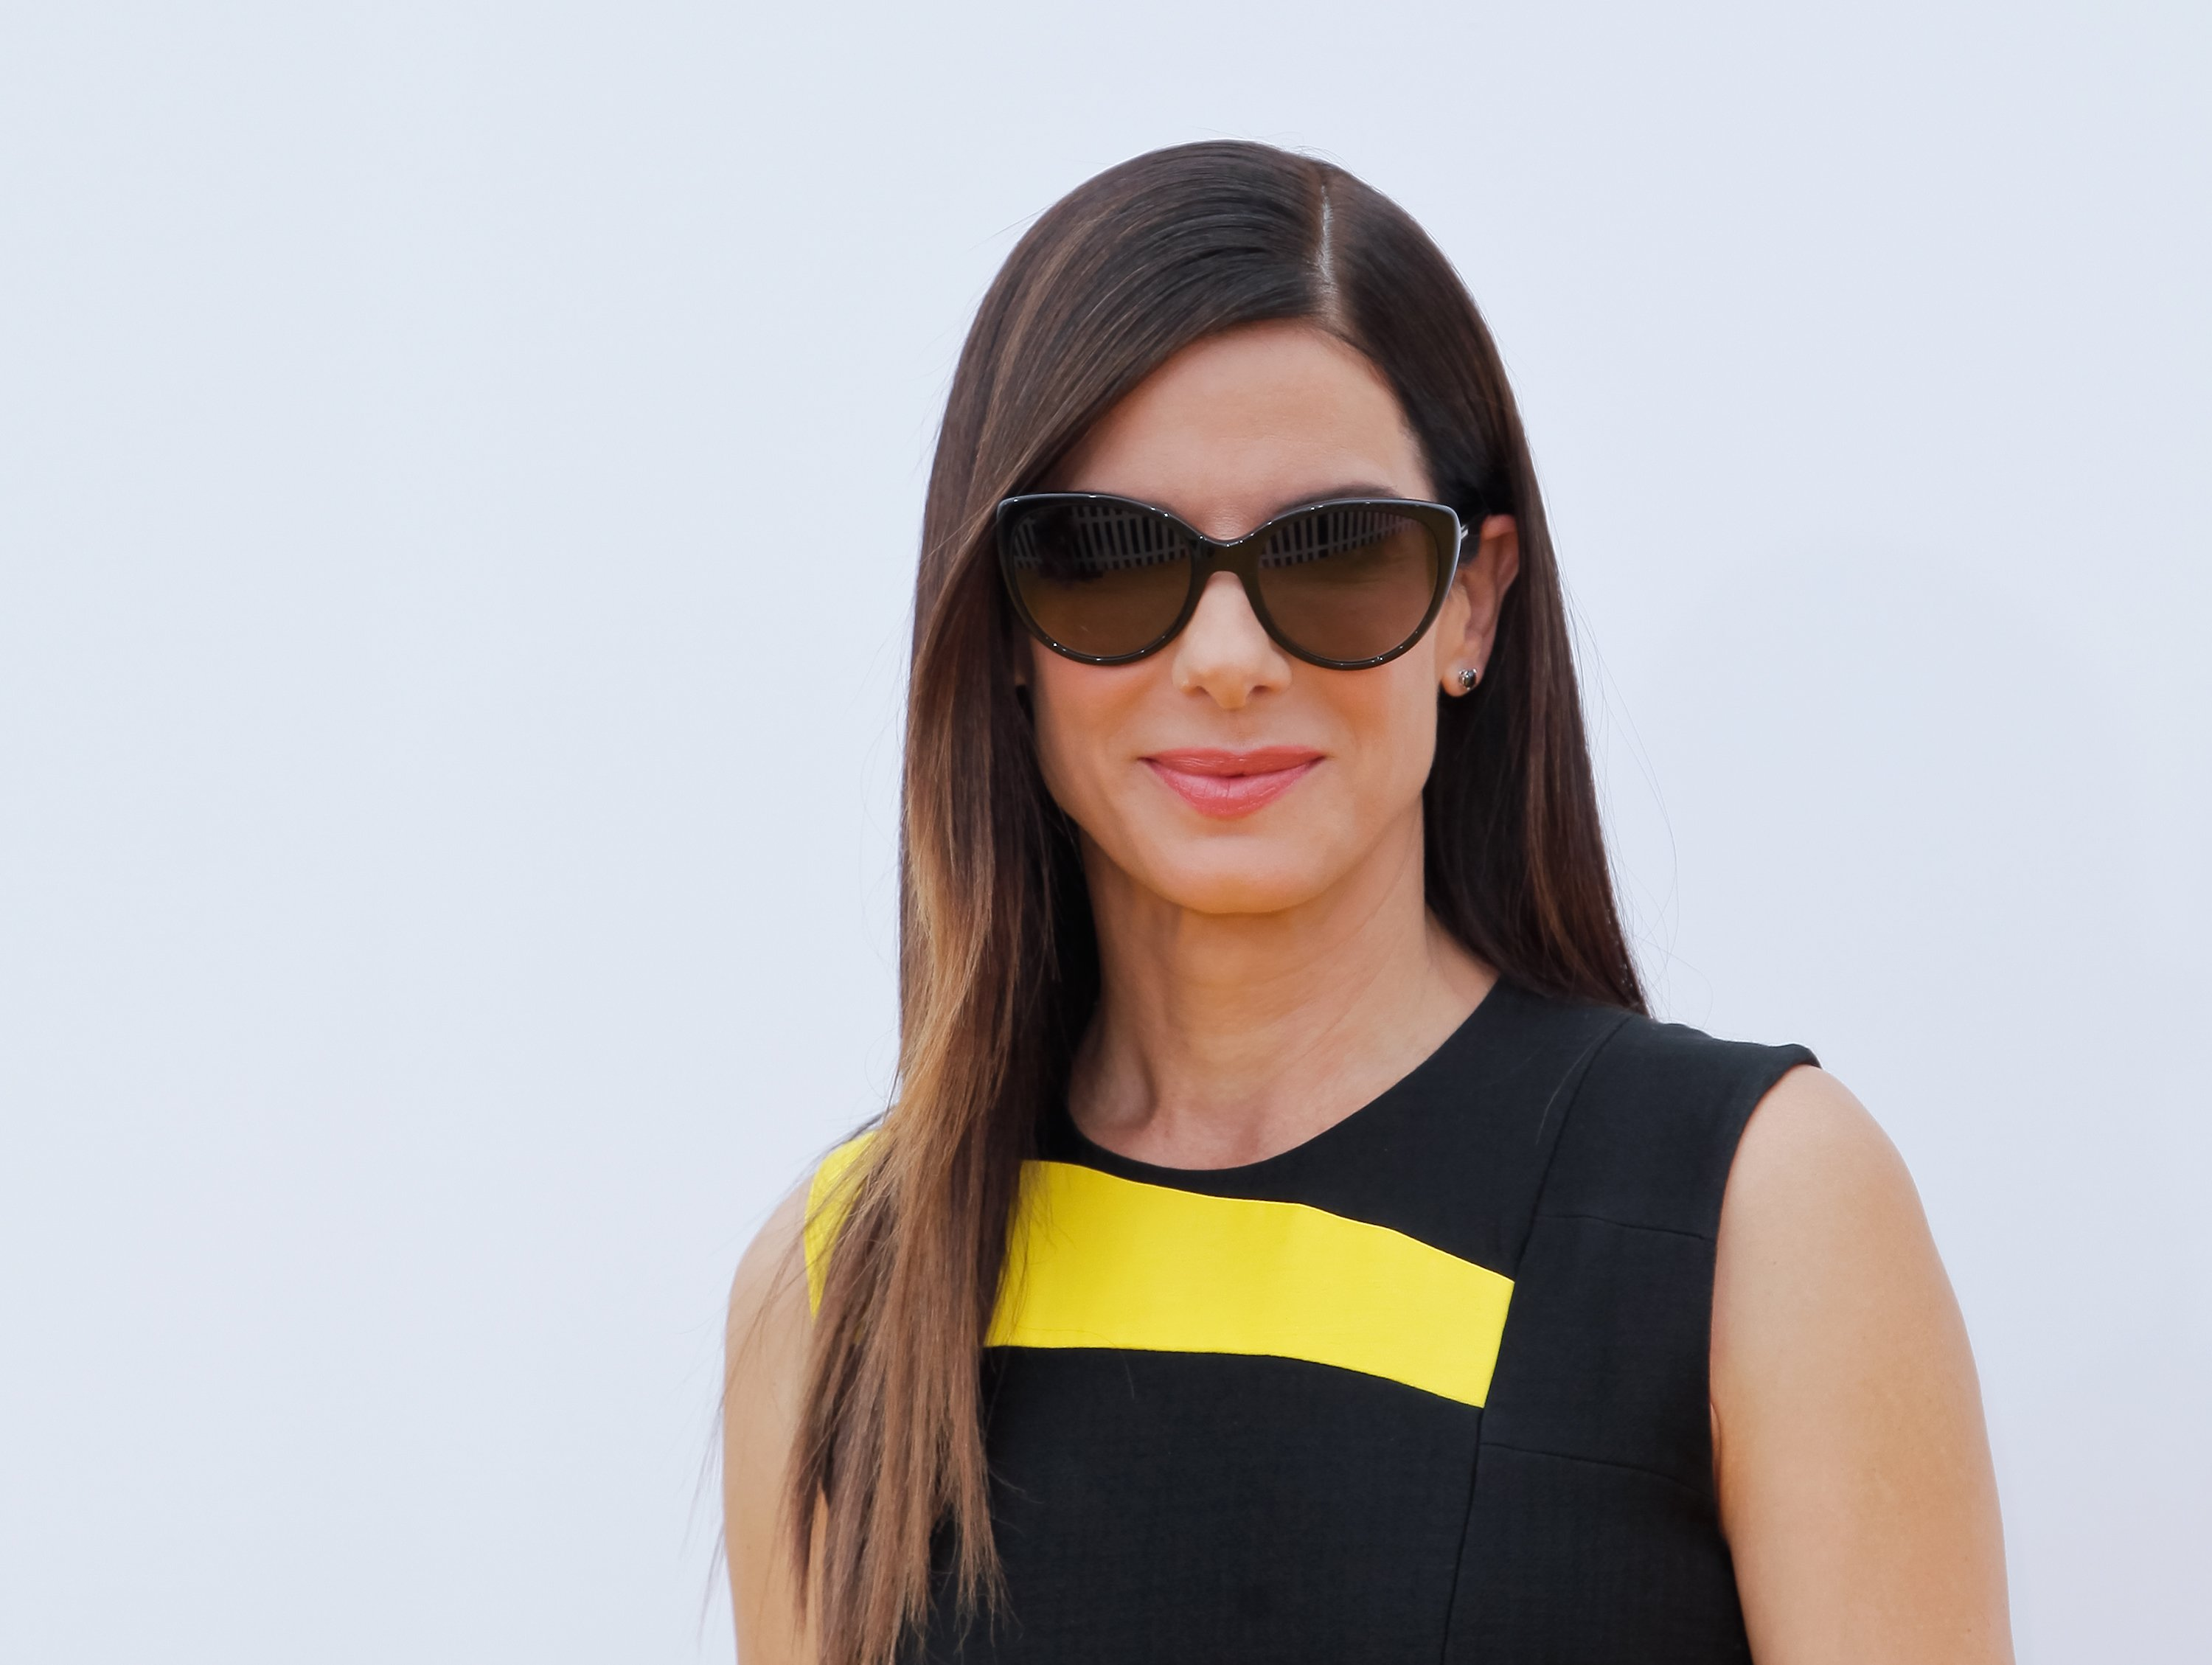 Image Credits: Getty Images / Tibrina Hobson | Sandra Bullock attends the Premiere of 'Minions' at The Shrine Auditorium on June 27, 2015 in Los Angeles, California.